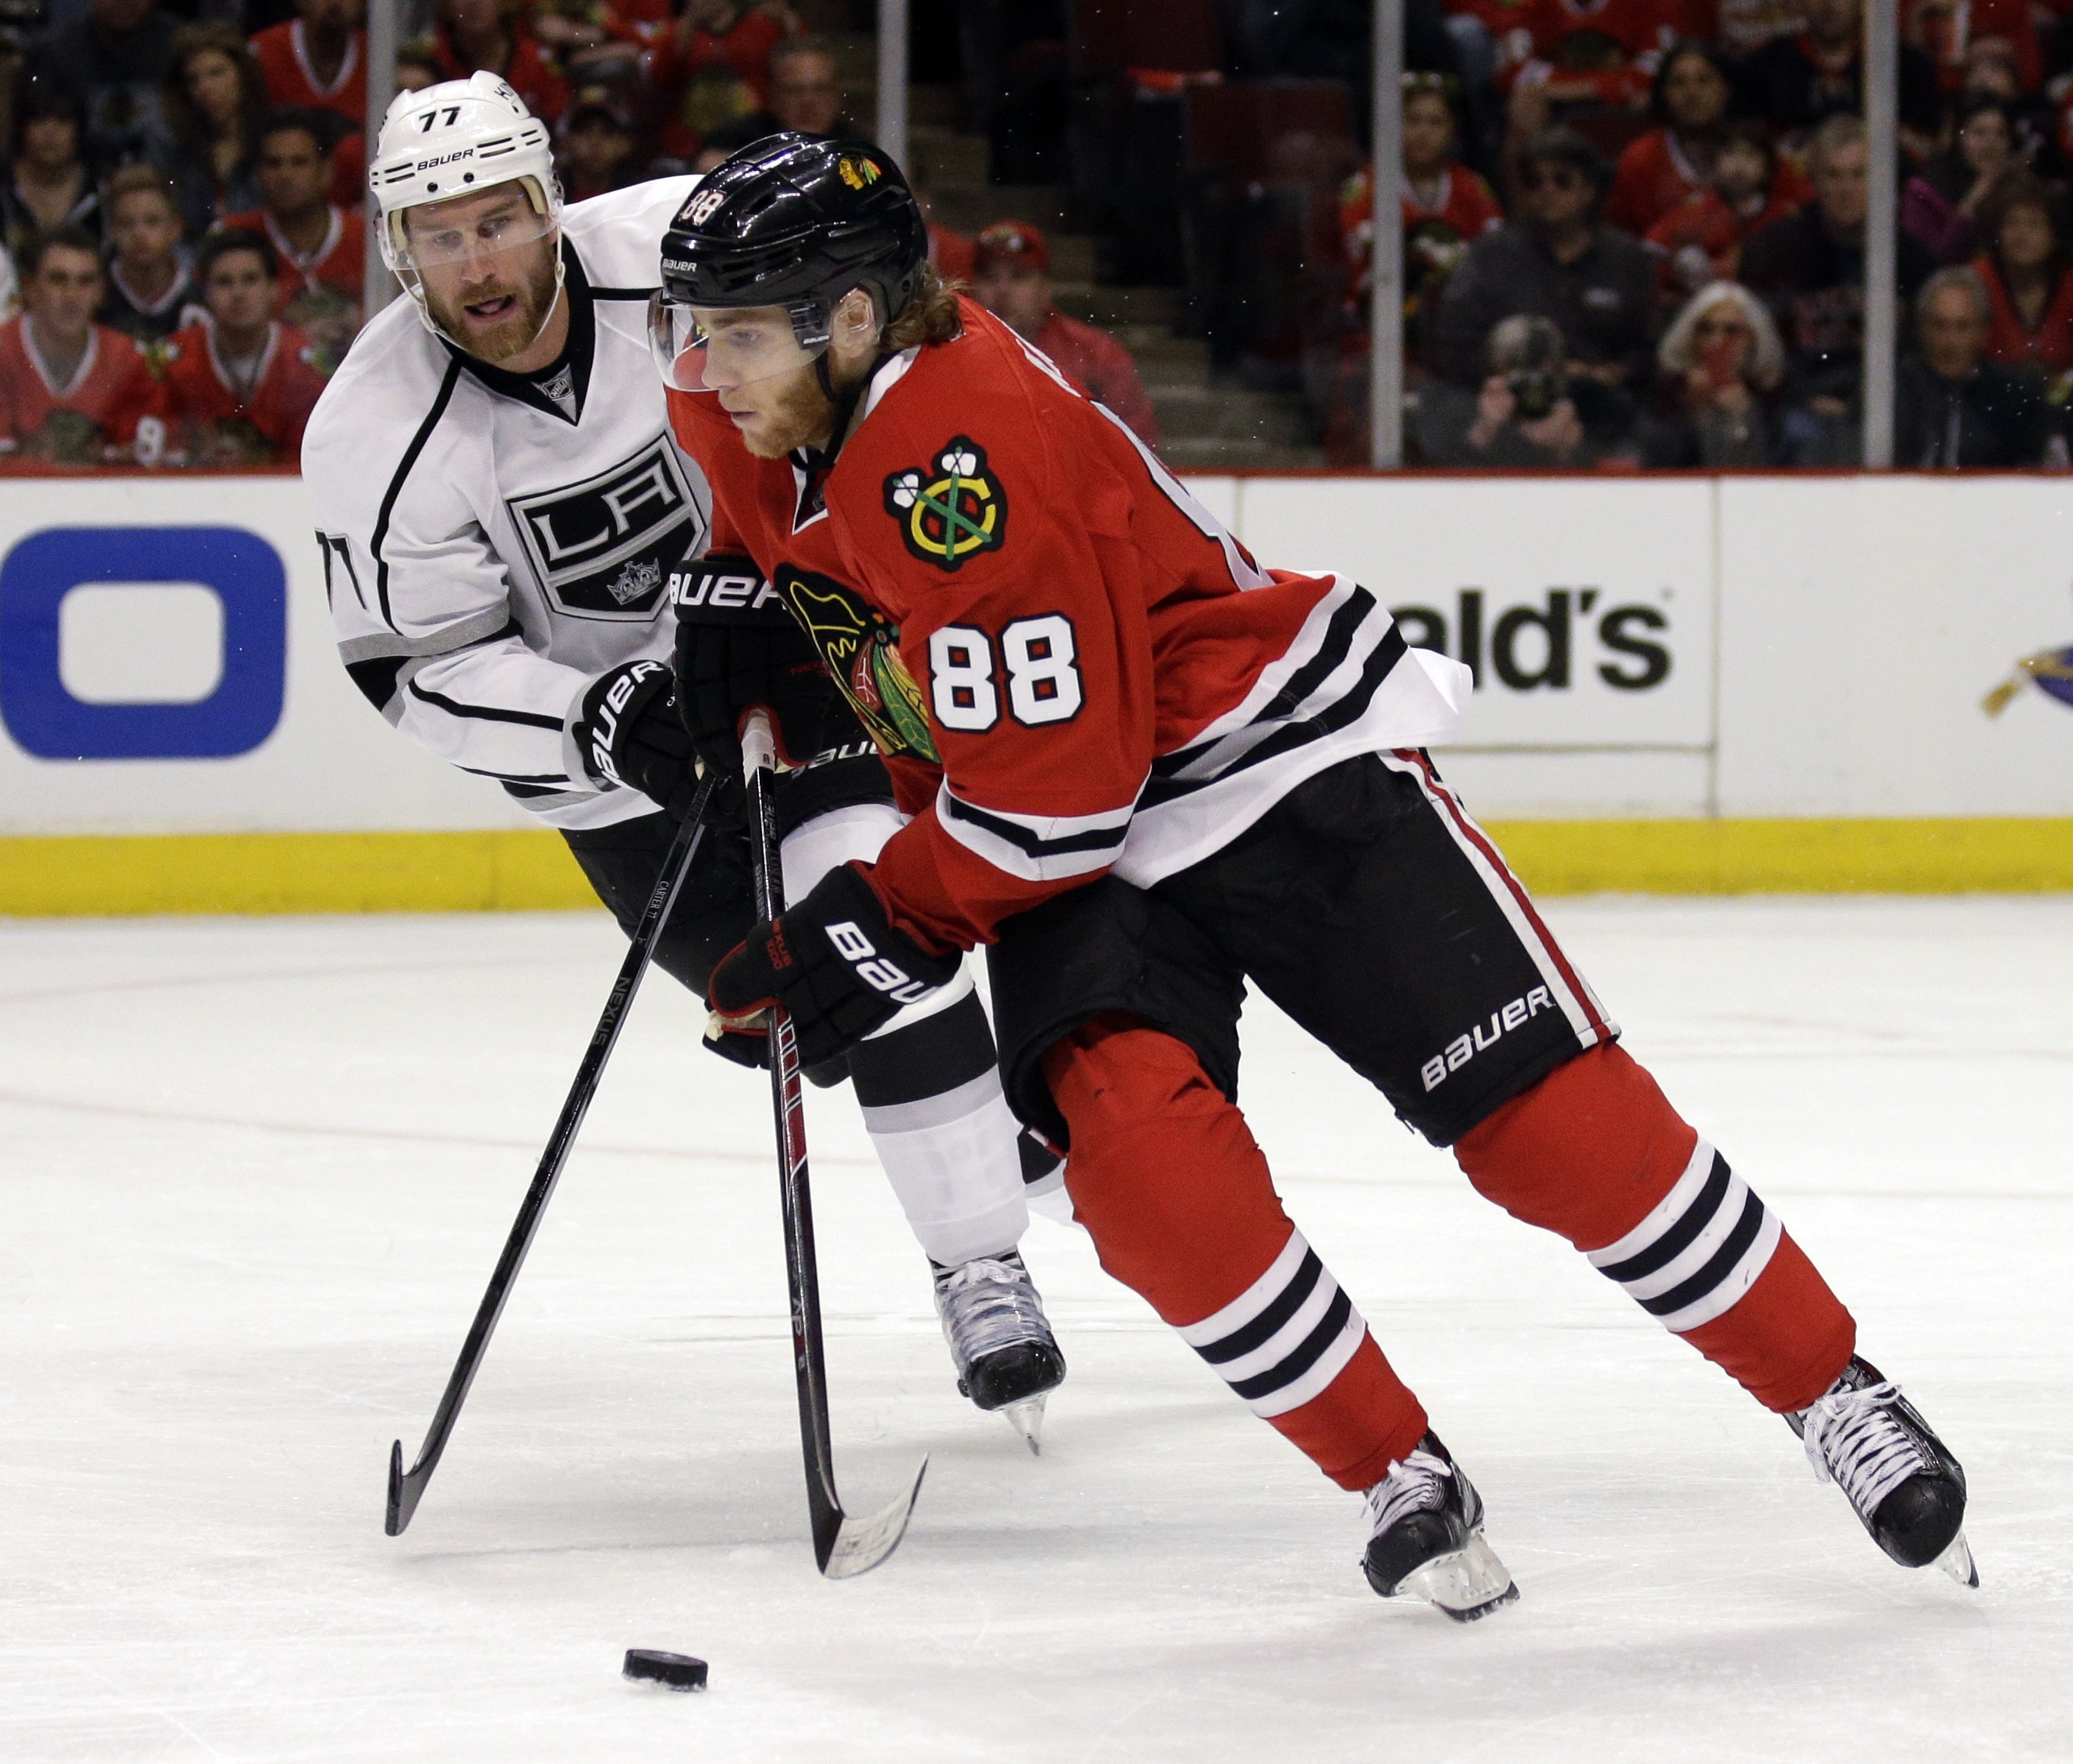 The Sabres serve as the home-opening foe for Patrick Kane and the Chicago Blackhawks. Kane, the South Buffalo native, gets to play before the hometown folks April 3. Jeff Carter, left, and the defending Stanley Cup champion L.A. Kings will visit Buffalo on Dec. 9. (AP Photo/Nam Y. Huh)